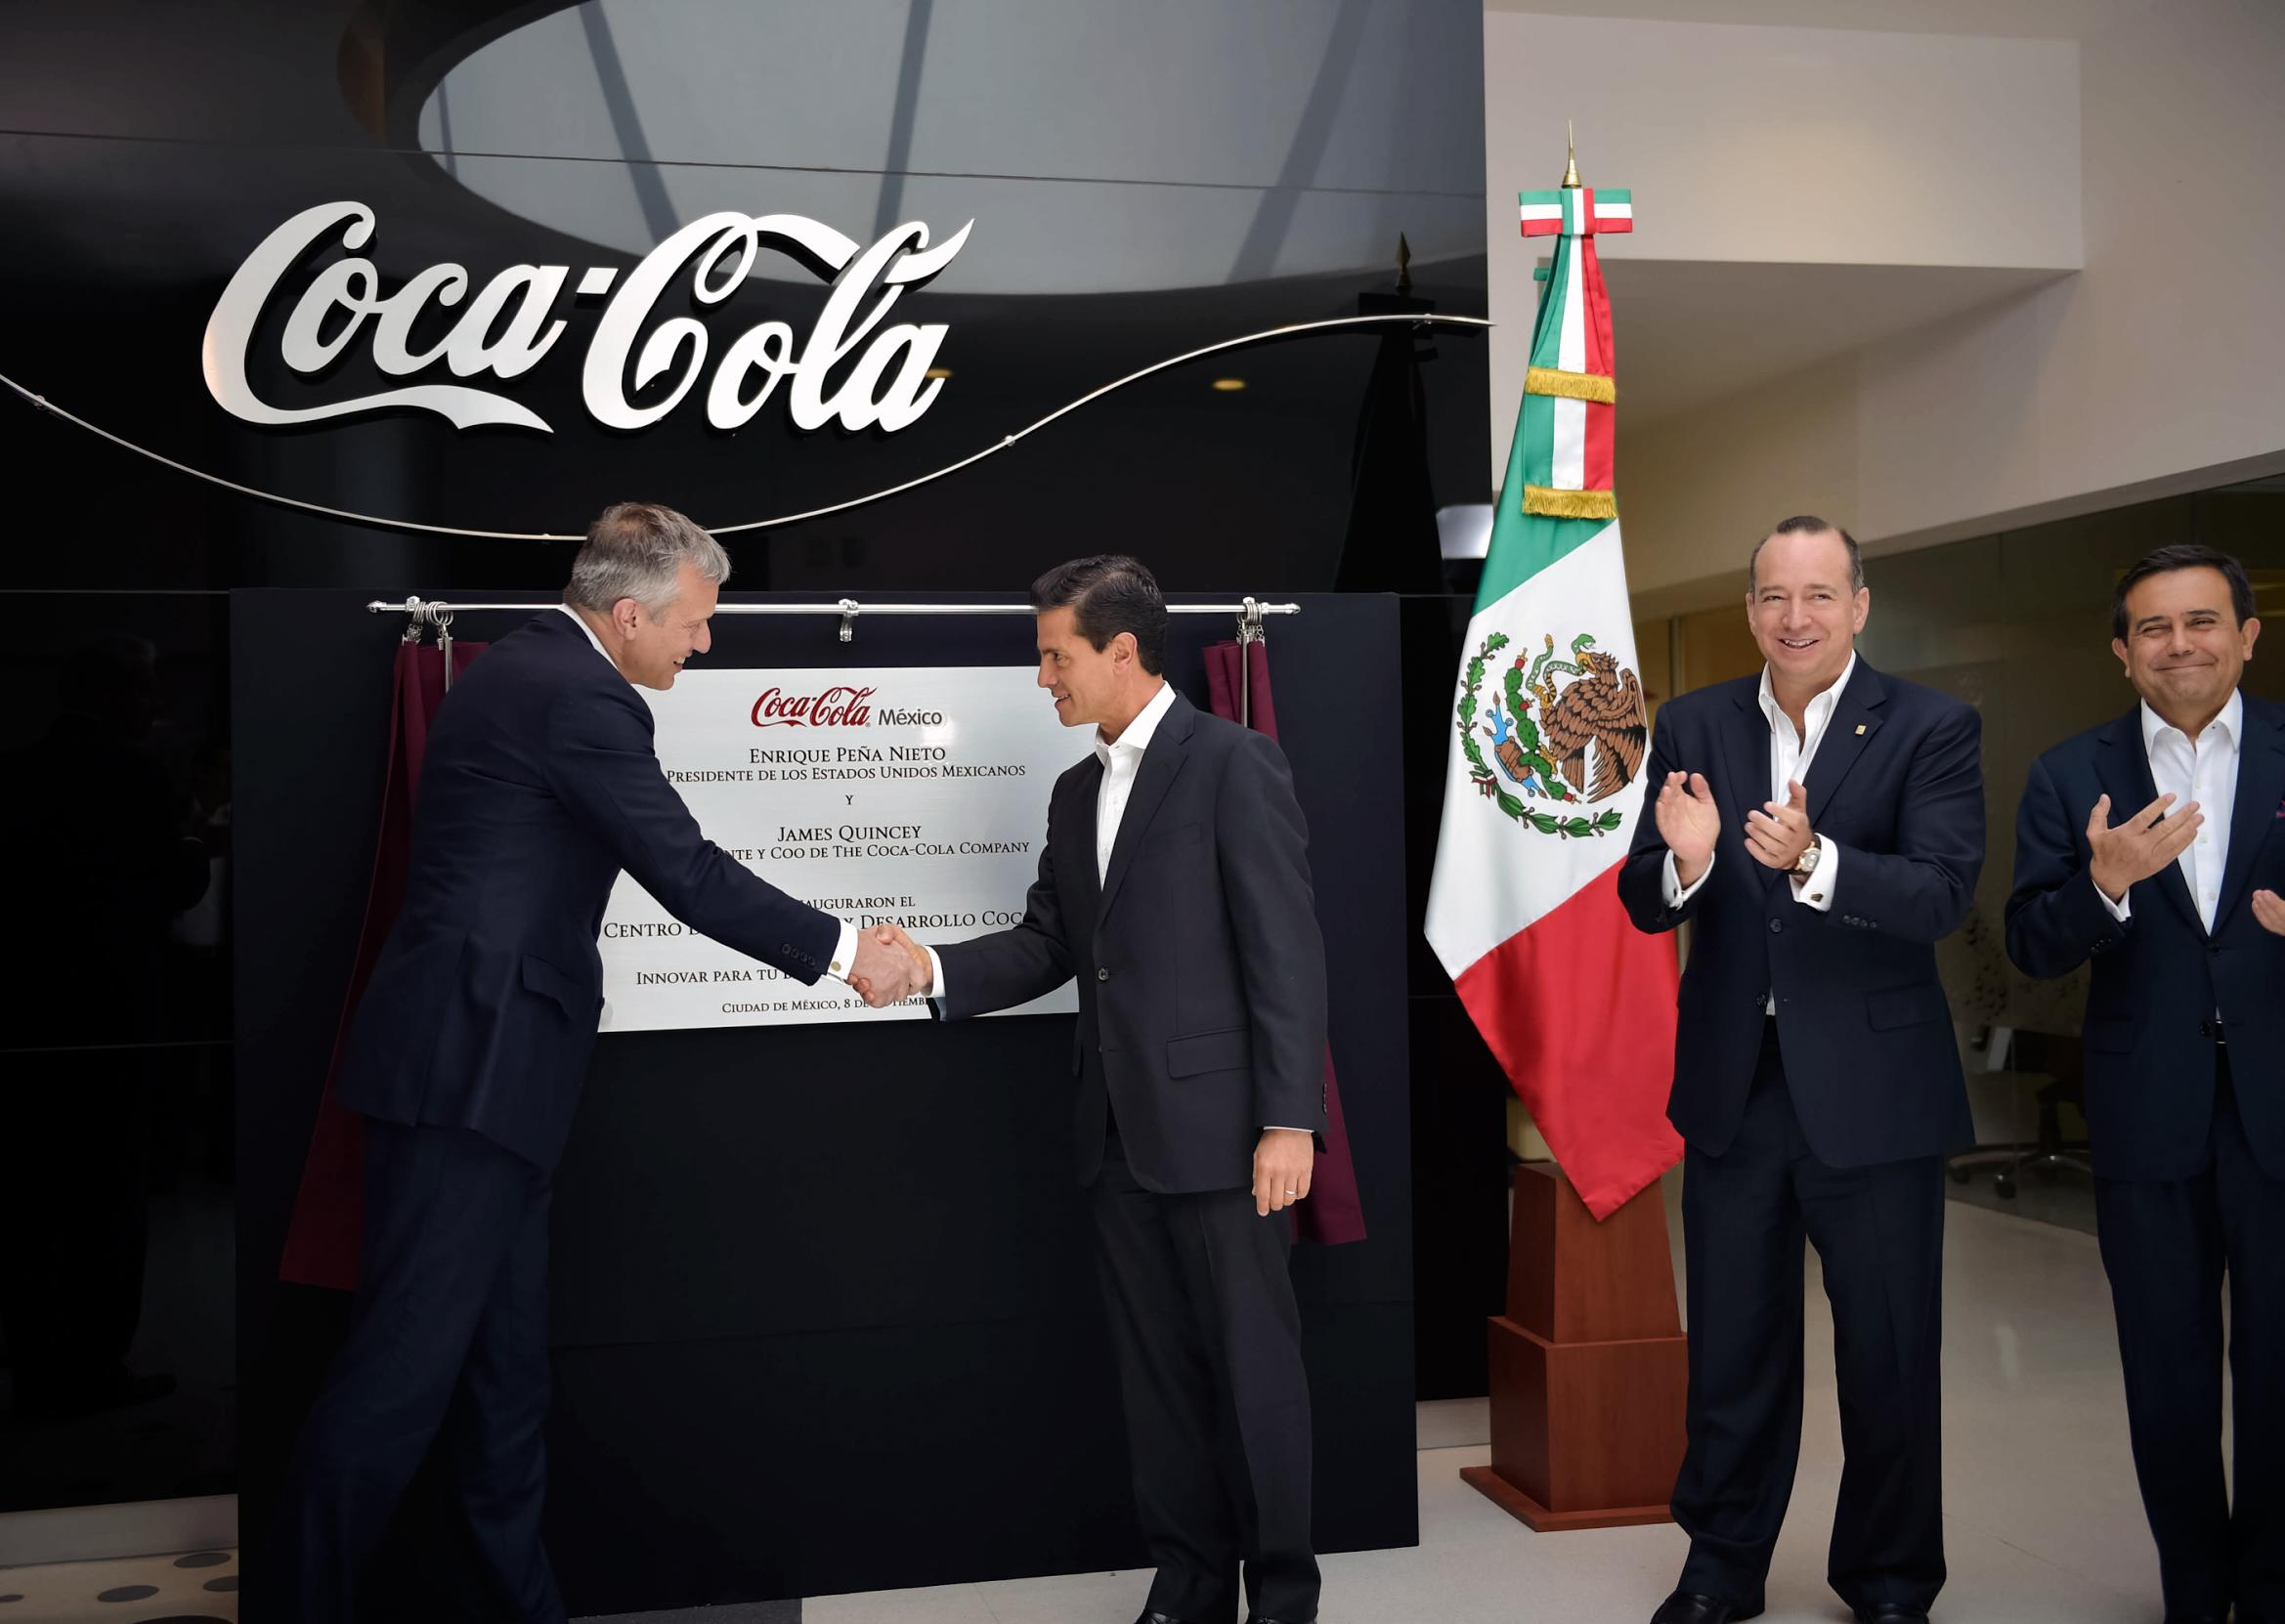 The president inaugurated the Coca Cola Center for Innovation and Development.